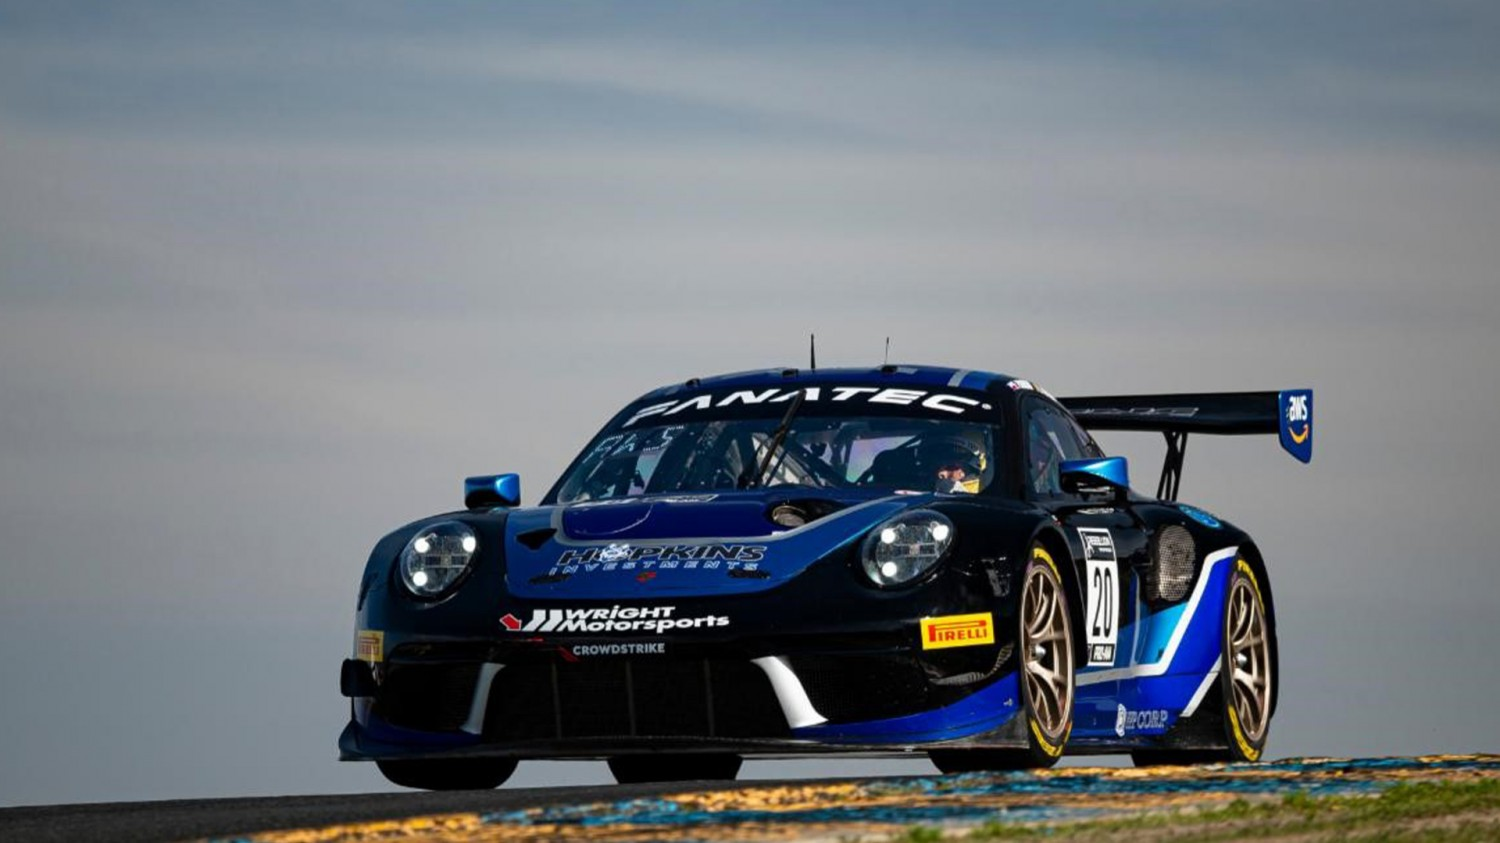 Wright Motorsports Rides Momentum into Austin Weekend of Racing